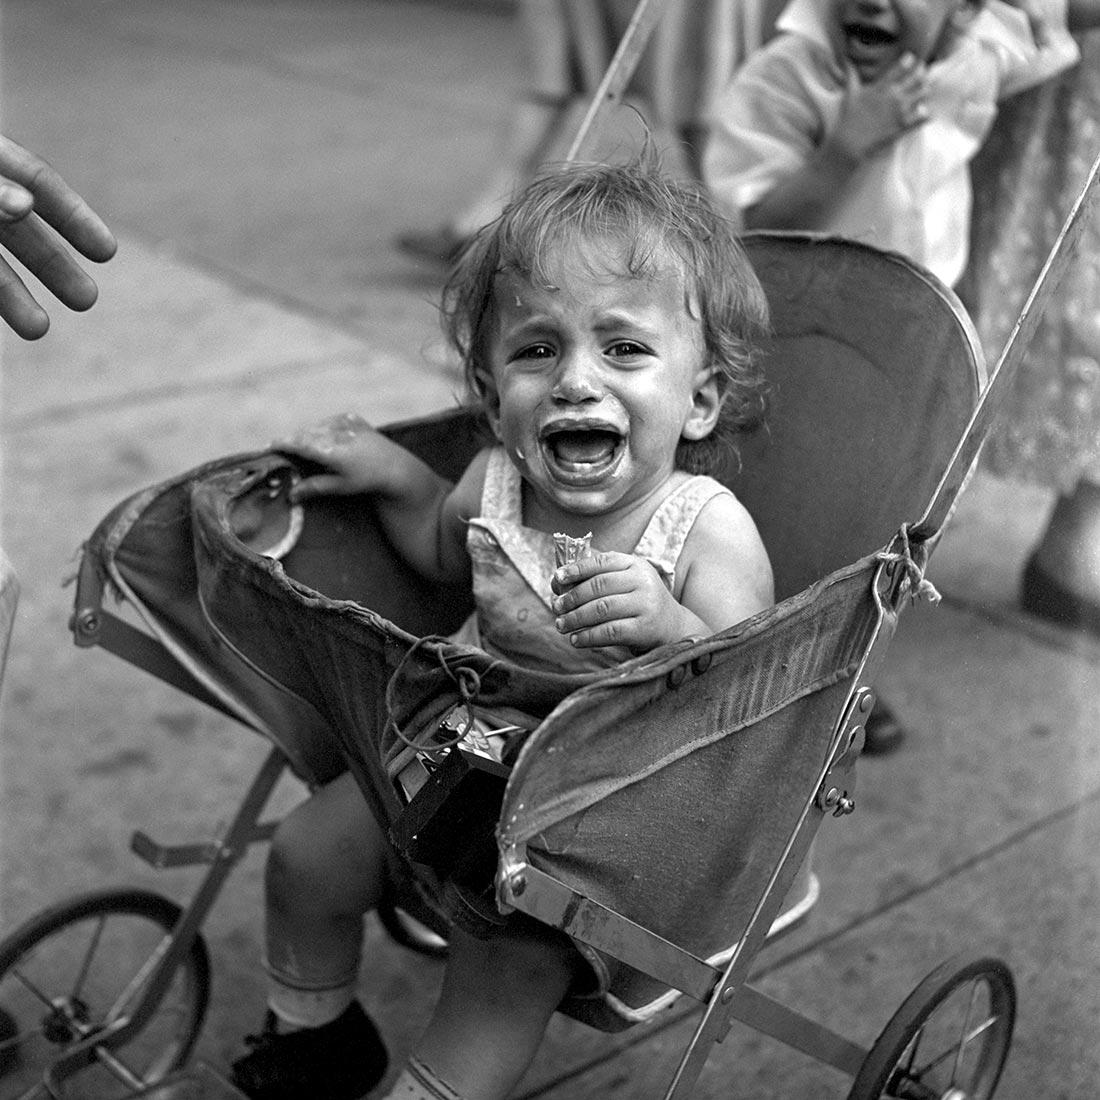 Photo of a crying child © Vivian Maier